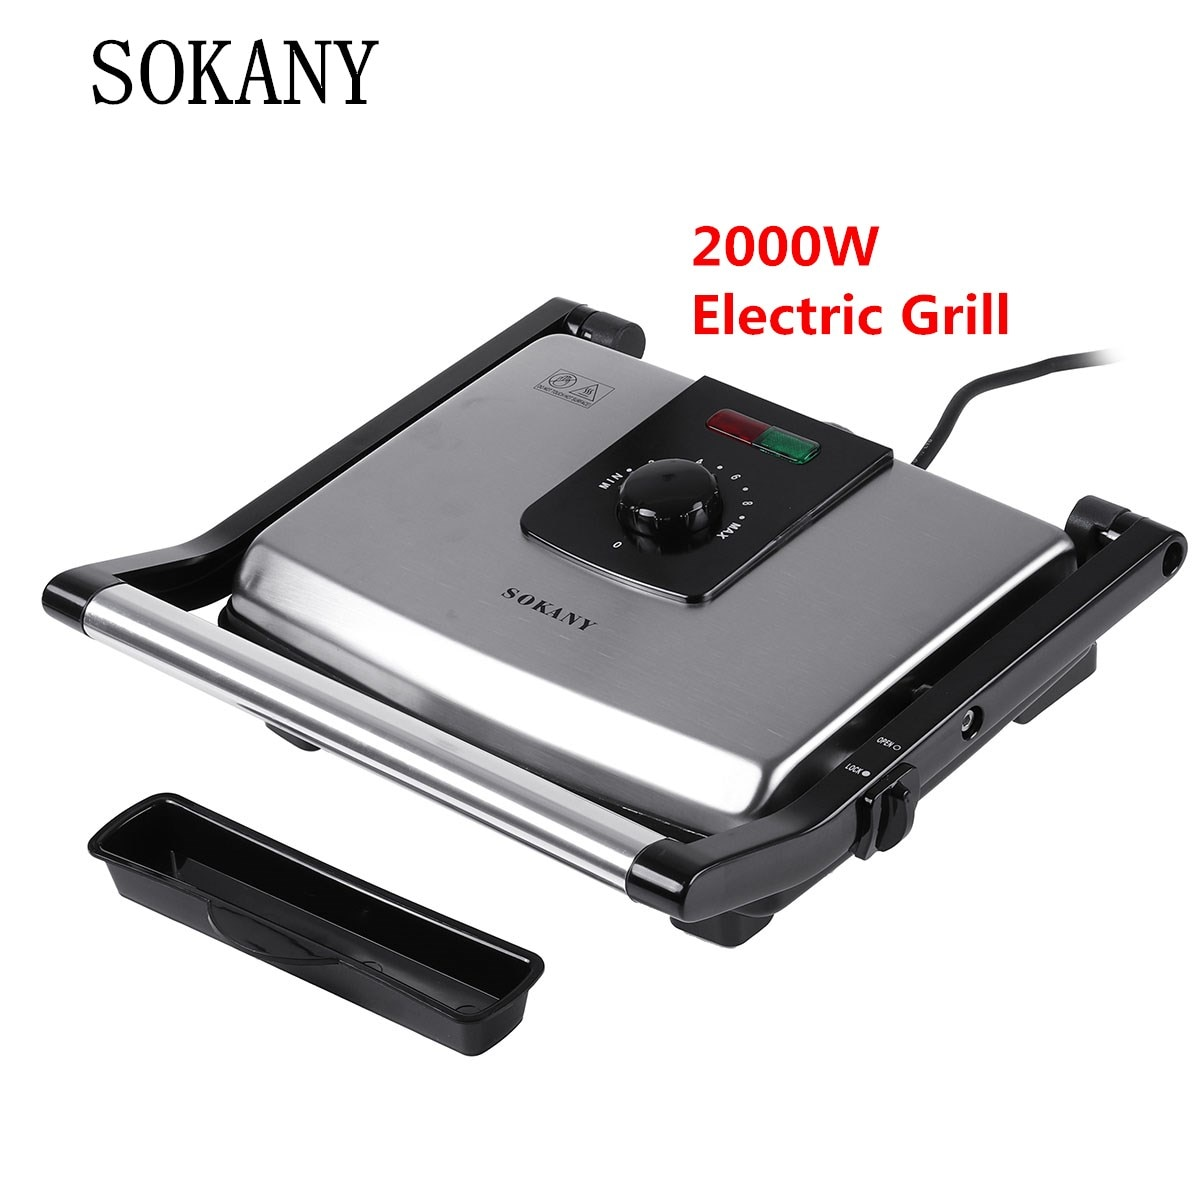 1600w electric shabu roasted pot multifunctional electric pan grill bbq grill raclette grill electric hotpot with grill pan SOKANY 2000W Electric Grill BBQ Grill Oven Home Appliances Smokeless Electric Hotplate Smokeless Grilled Meat Pan Electric Grill